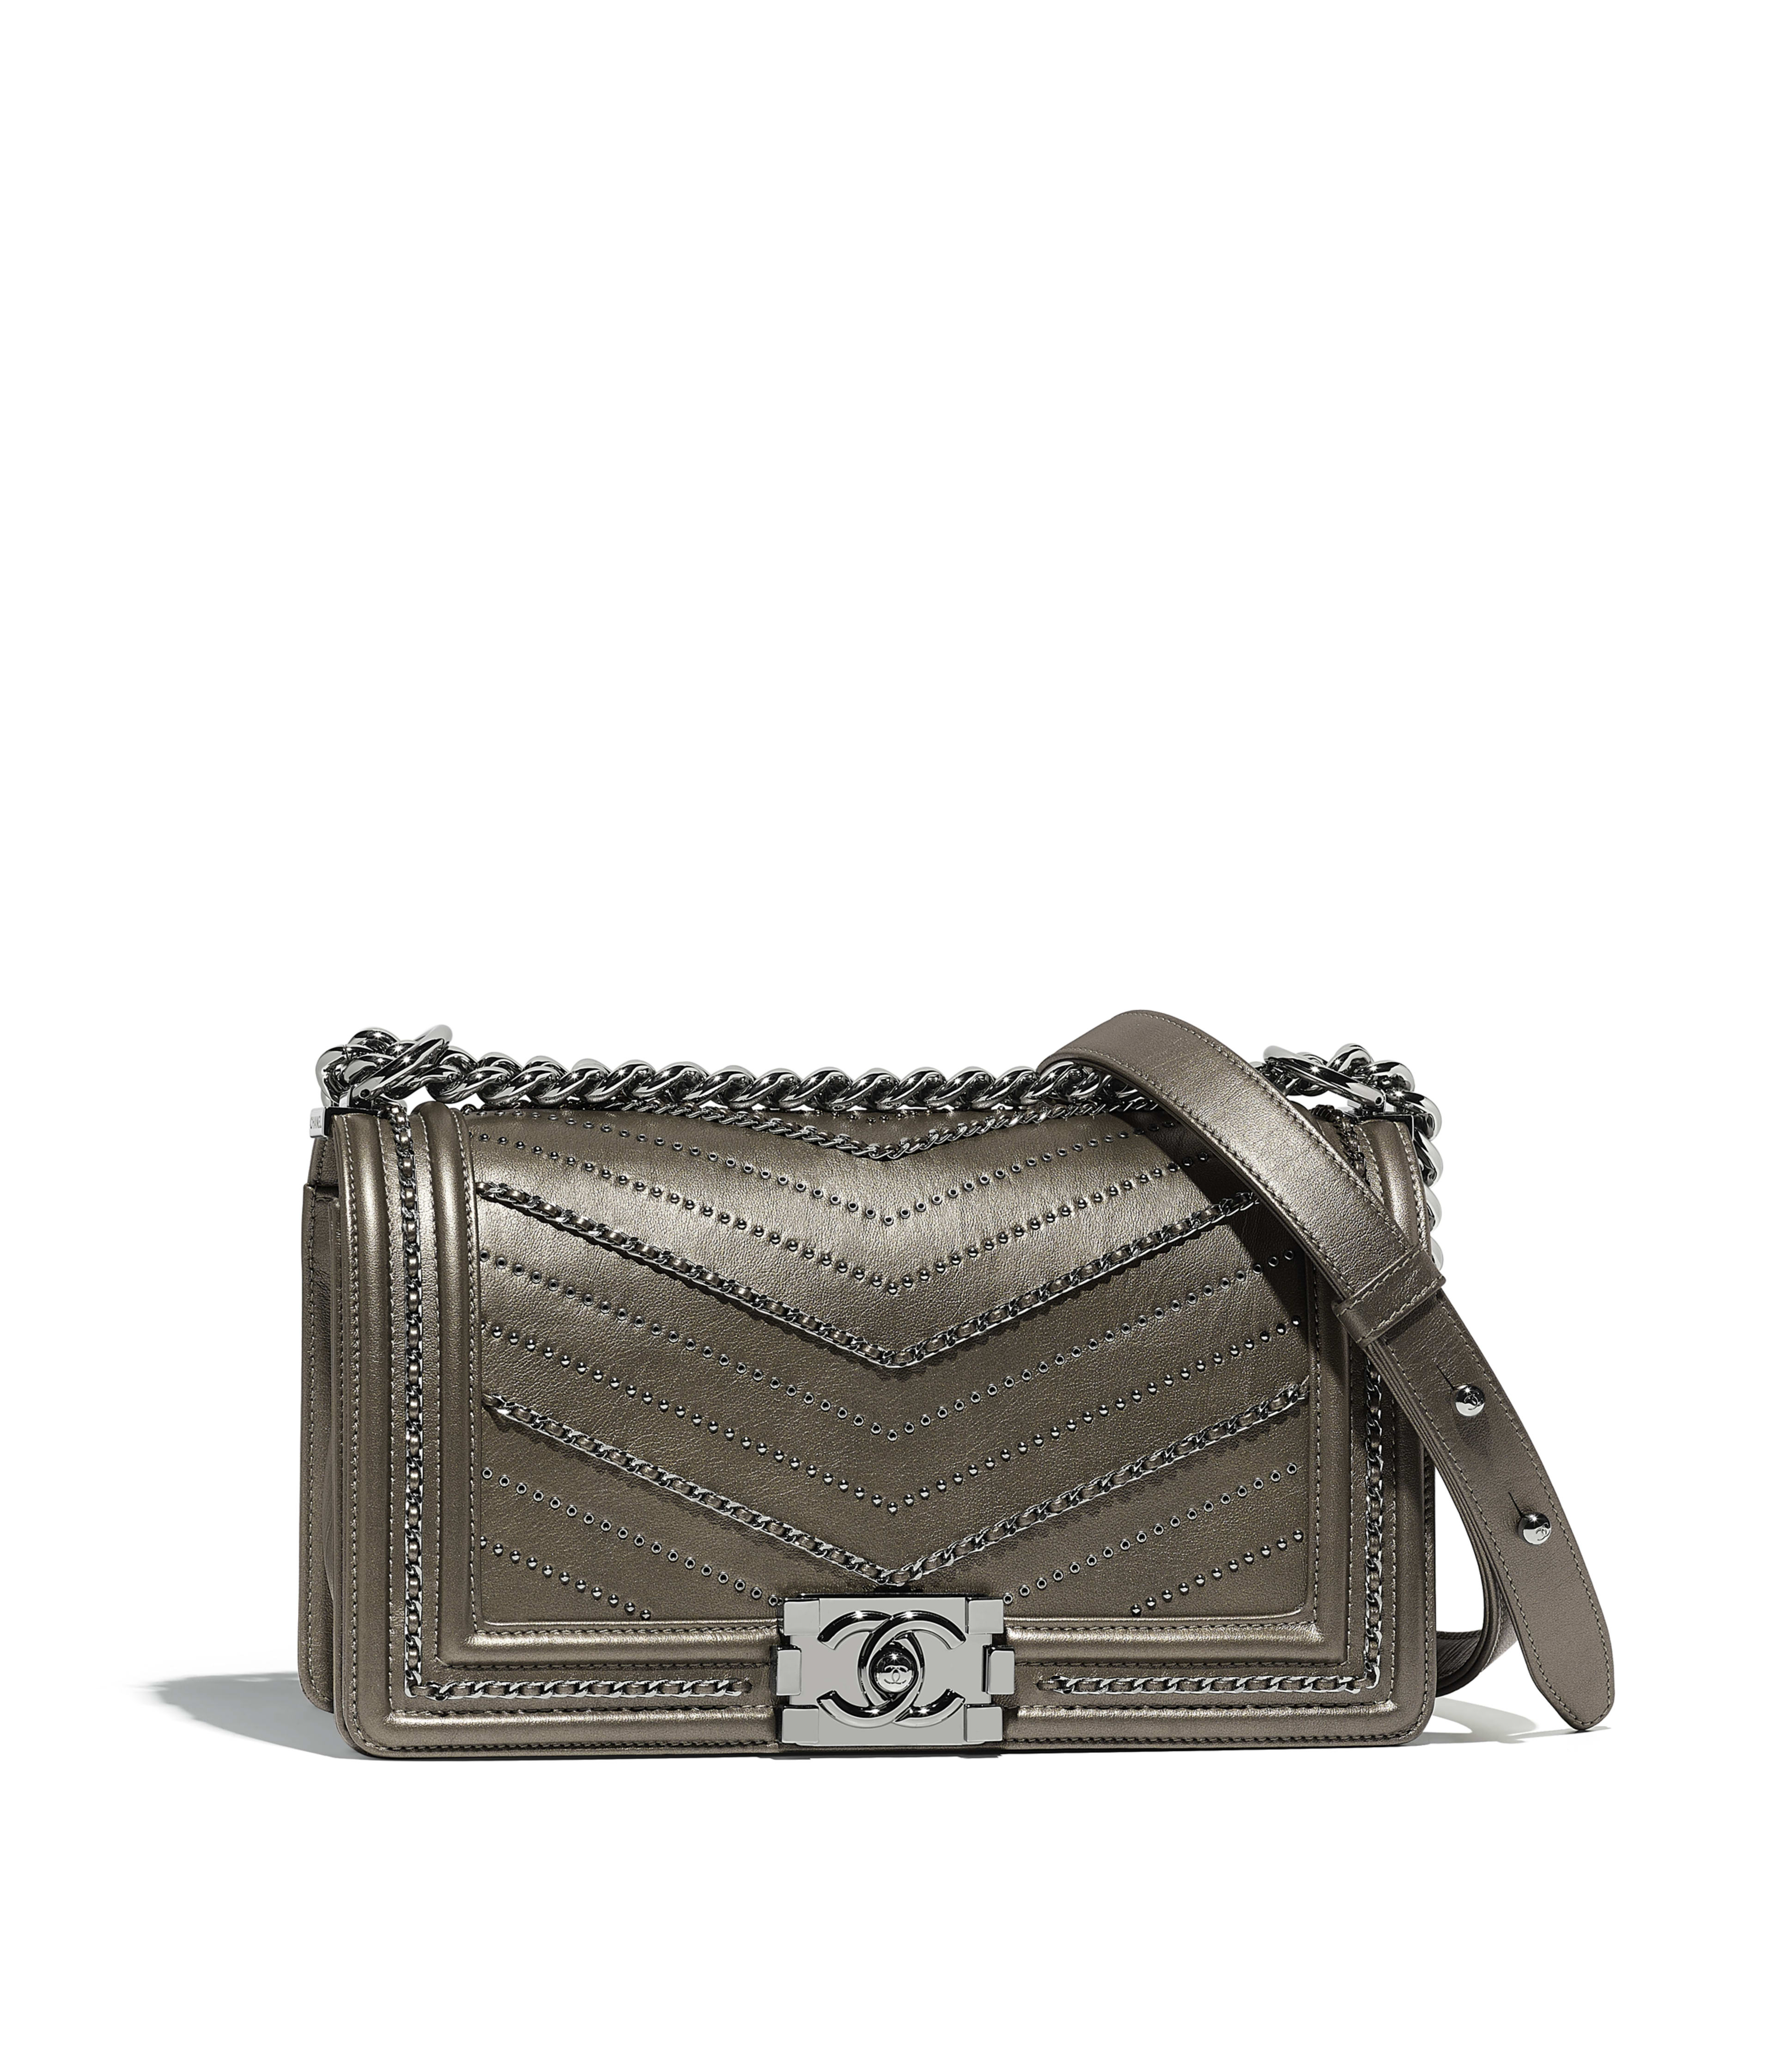 Boy Chanel Handbag Metallic Crumpled Calfskin Ruthenium Finish Metal Silver Ref A67086y839685b552